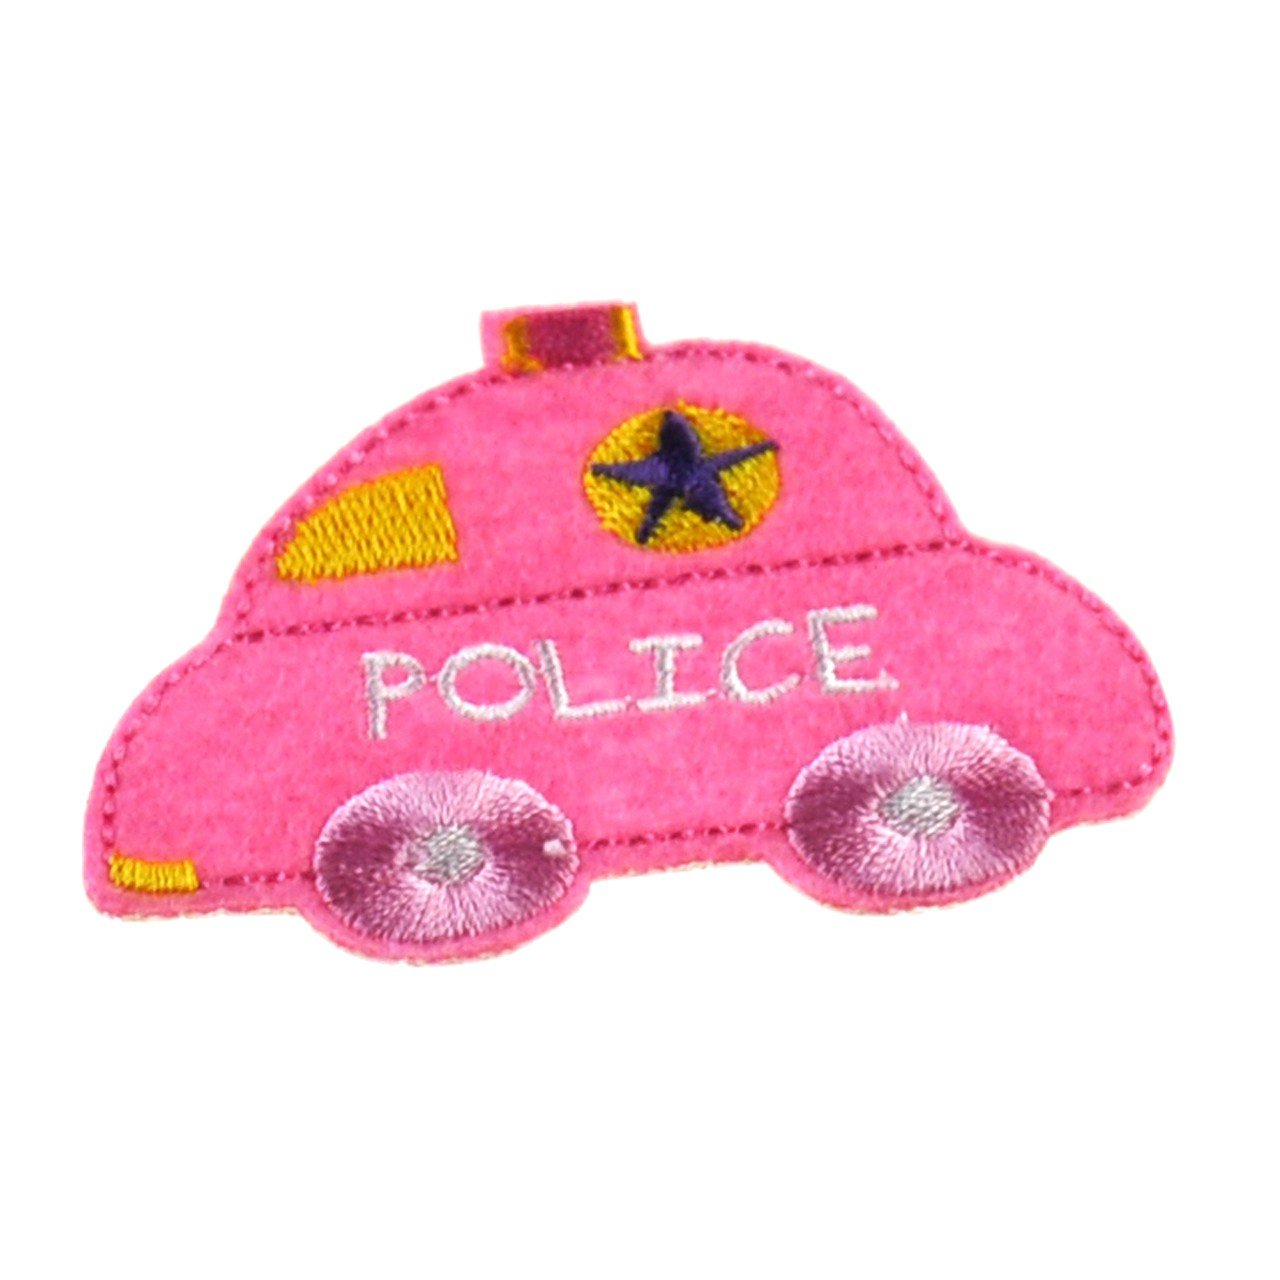 YazyCraft Police Car Iron On Applique Patch For Kids And Baby/Kidults (Dark Pink)